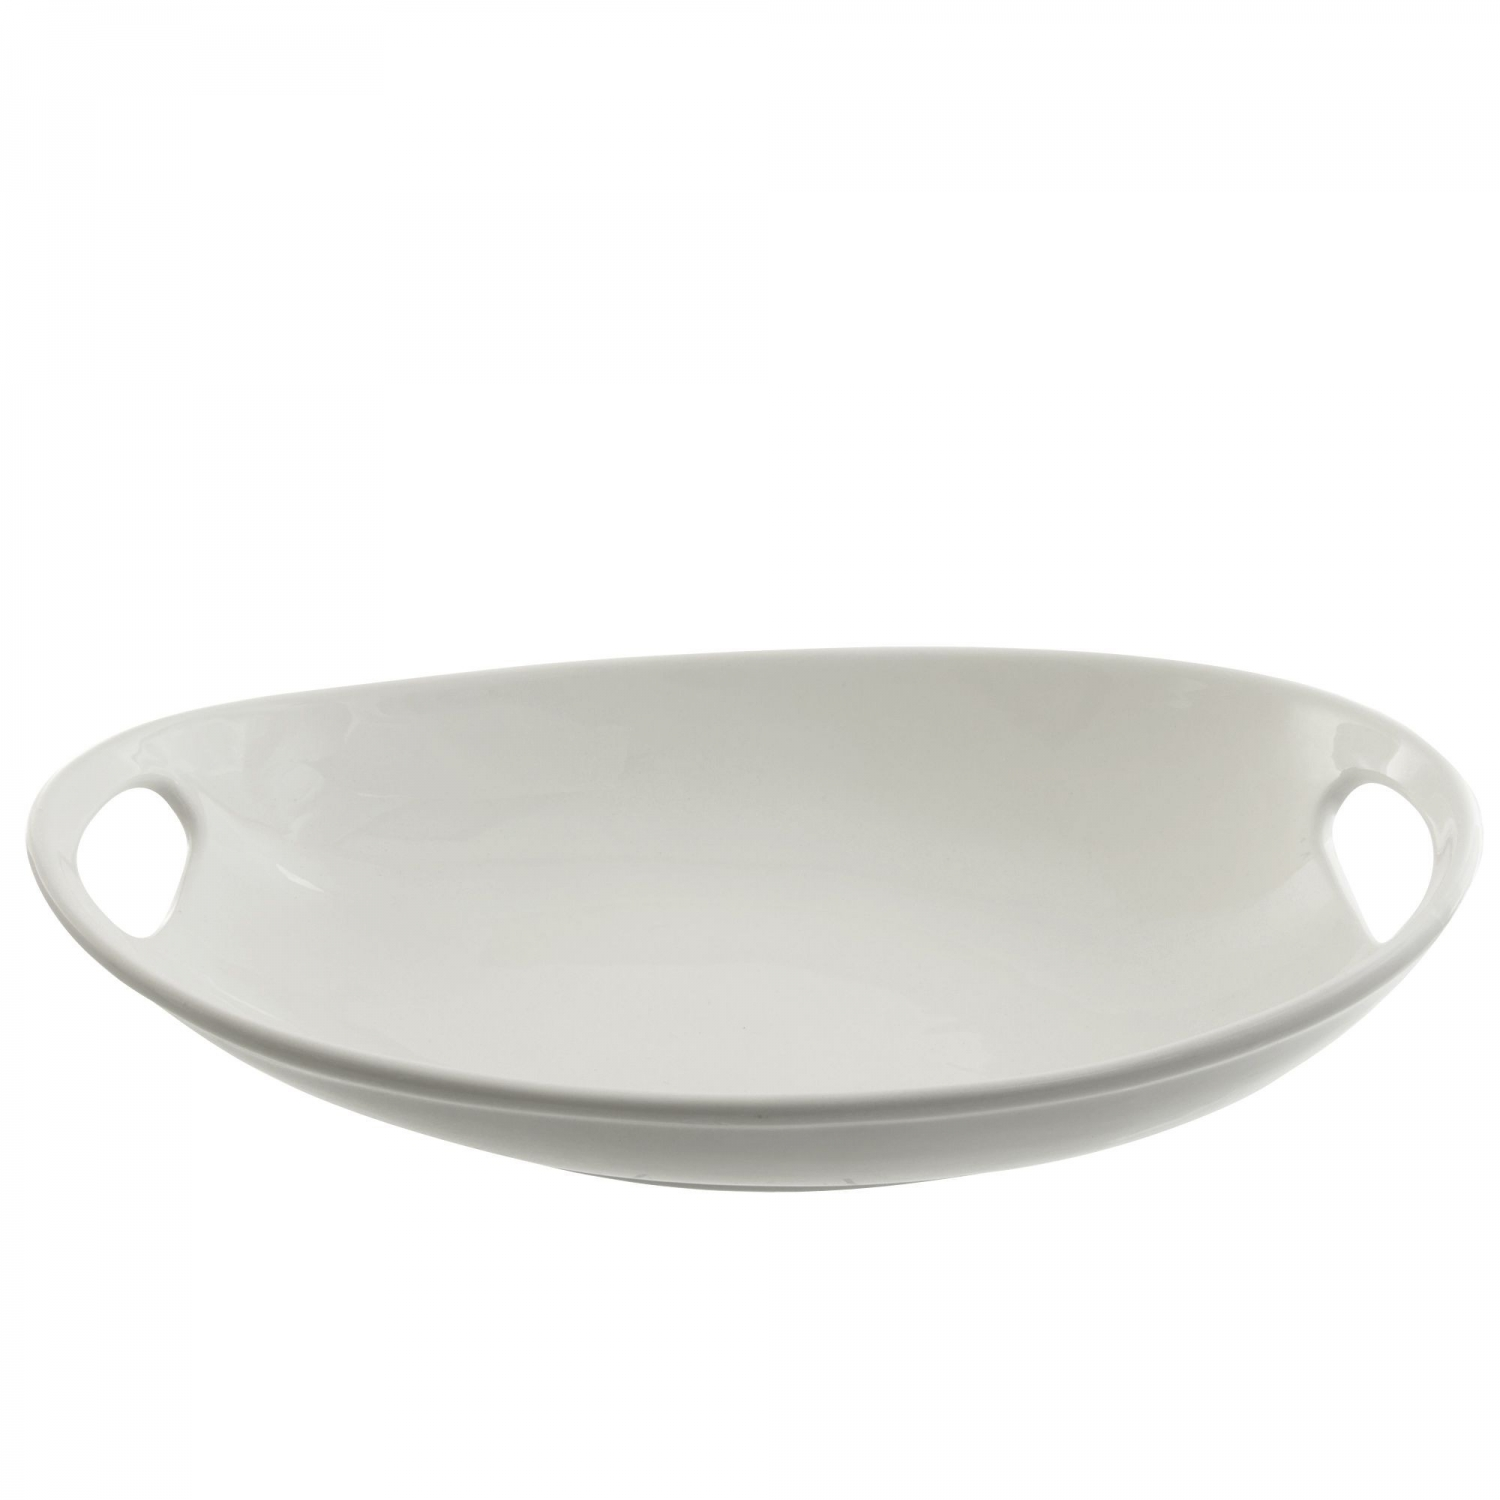 "10 Strawberry Street OSLO-18SHLWHNDBWL Oslo Oval Handle Platter 18-1/4"" x 12-3/4"""